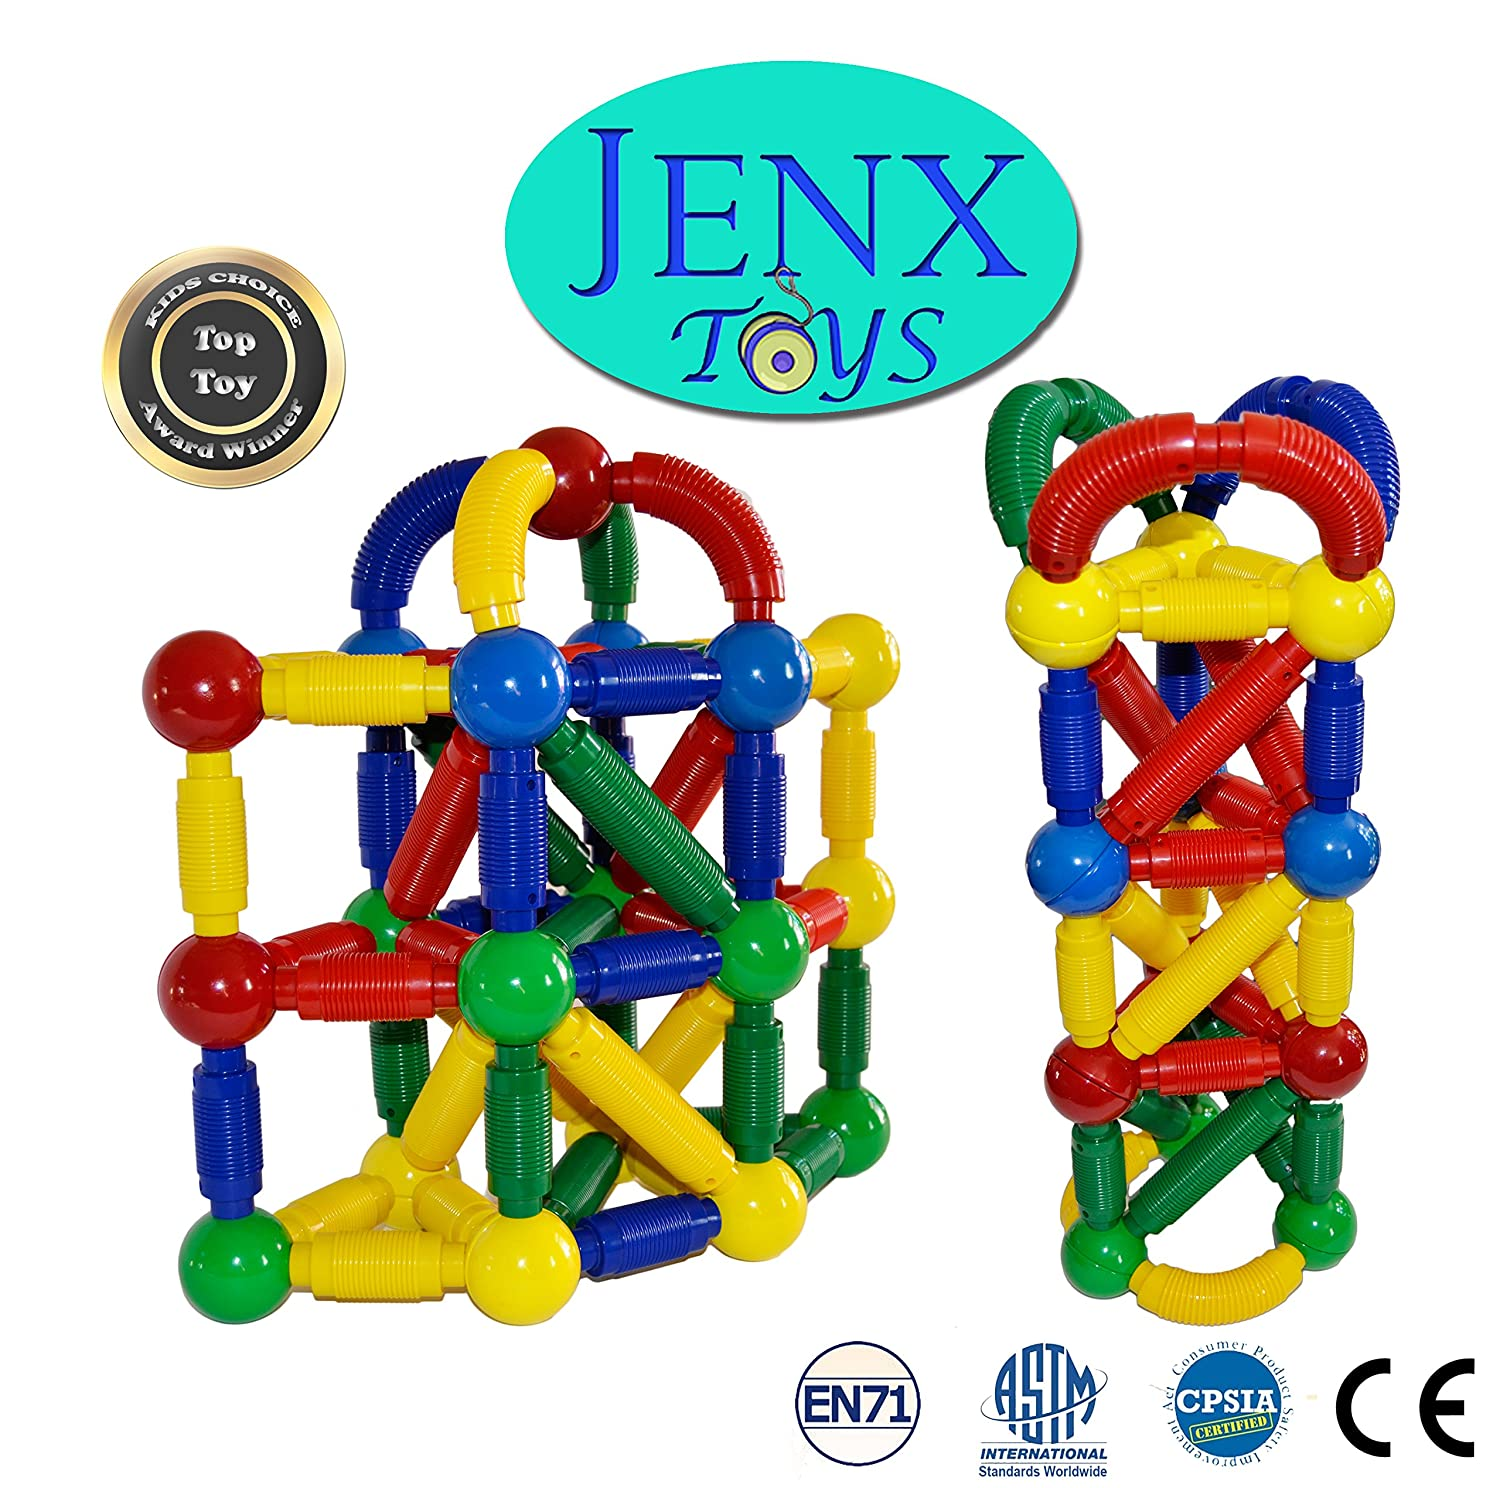 But With Several Different Shapes Including Bendable Rods And Balls A Carry Bag Activity Guide These Are Popular For Playtime Older Siblings